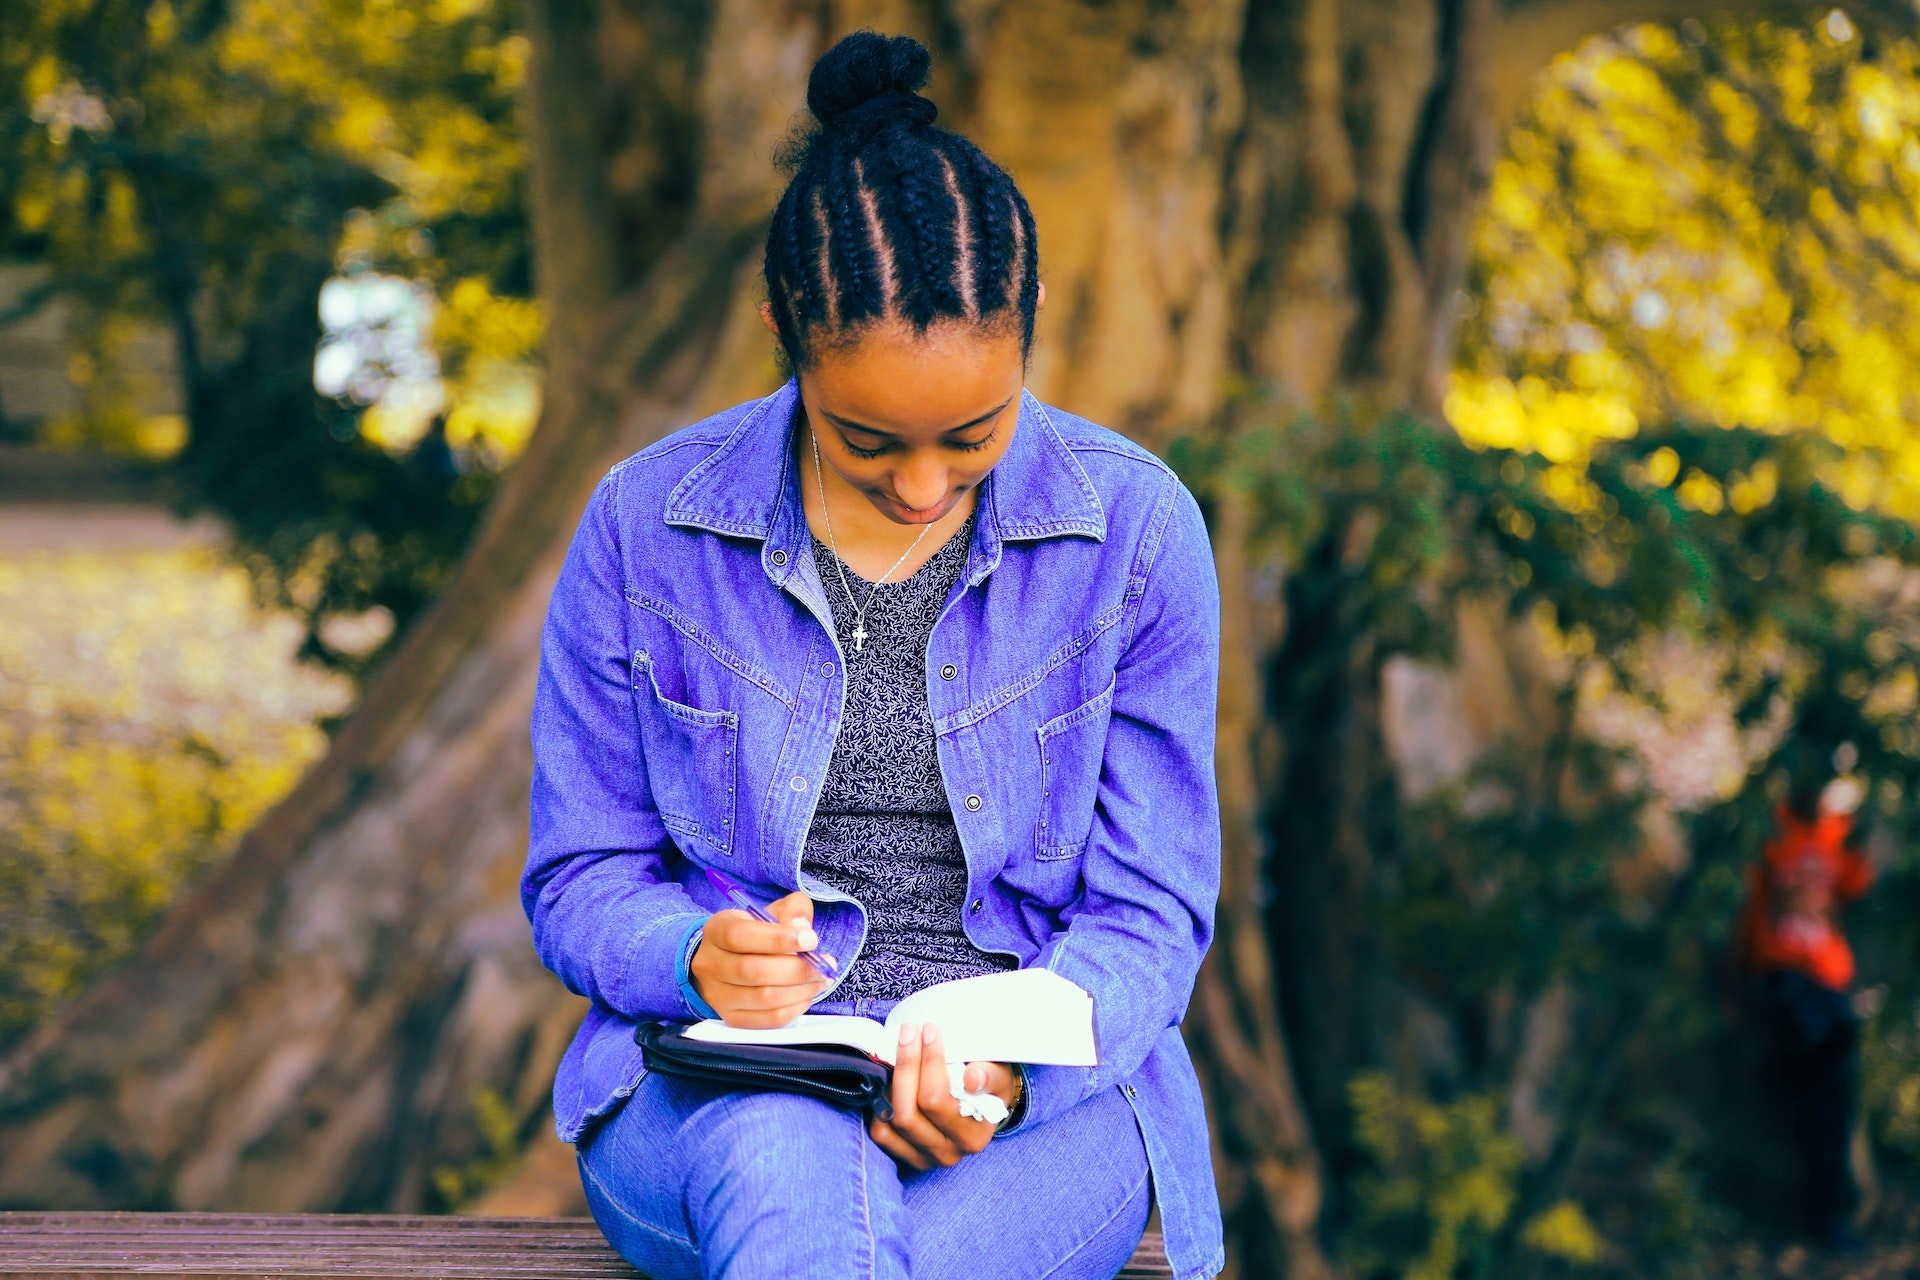 A woman sits under a tree writing in a journal.